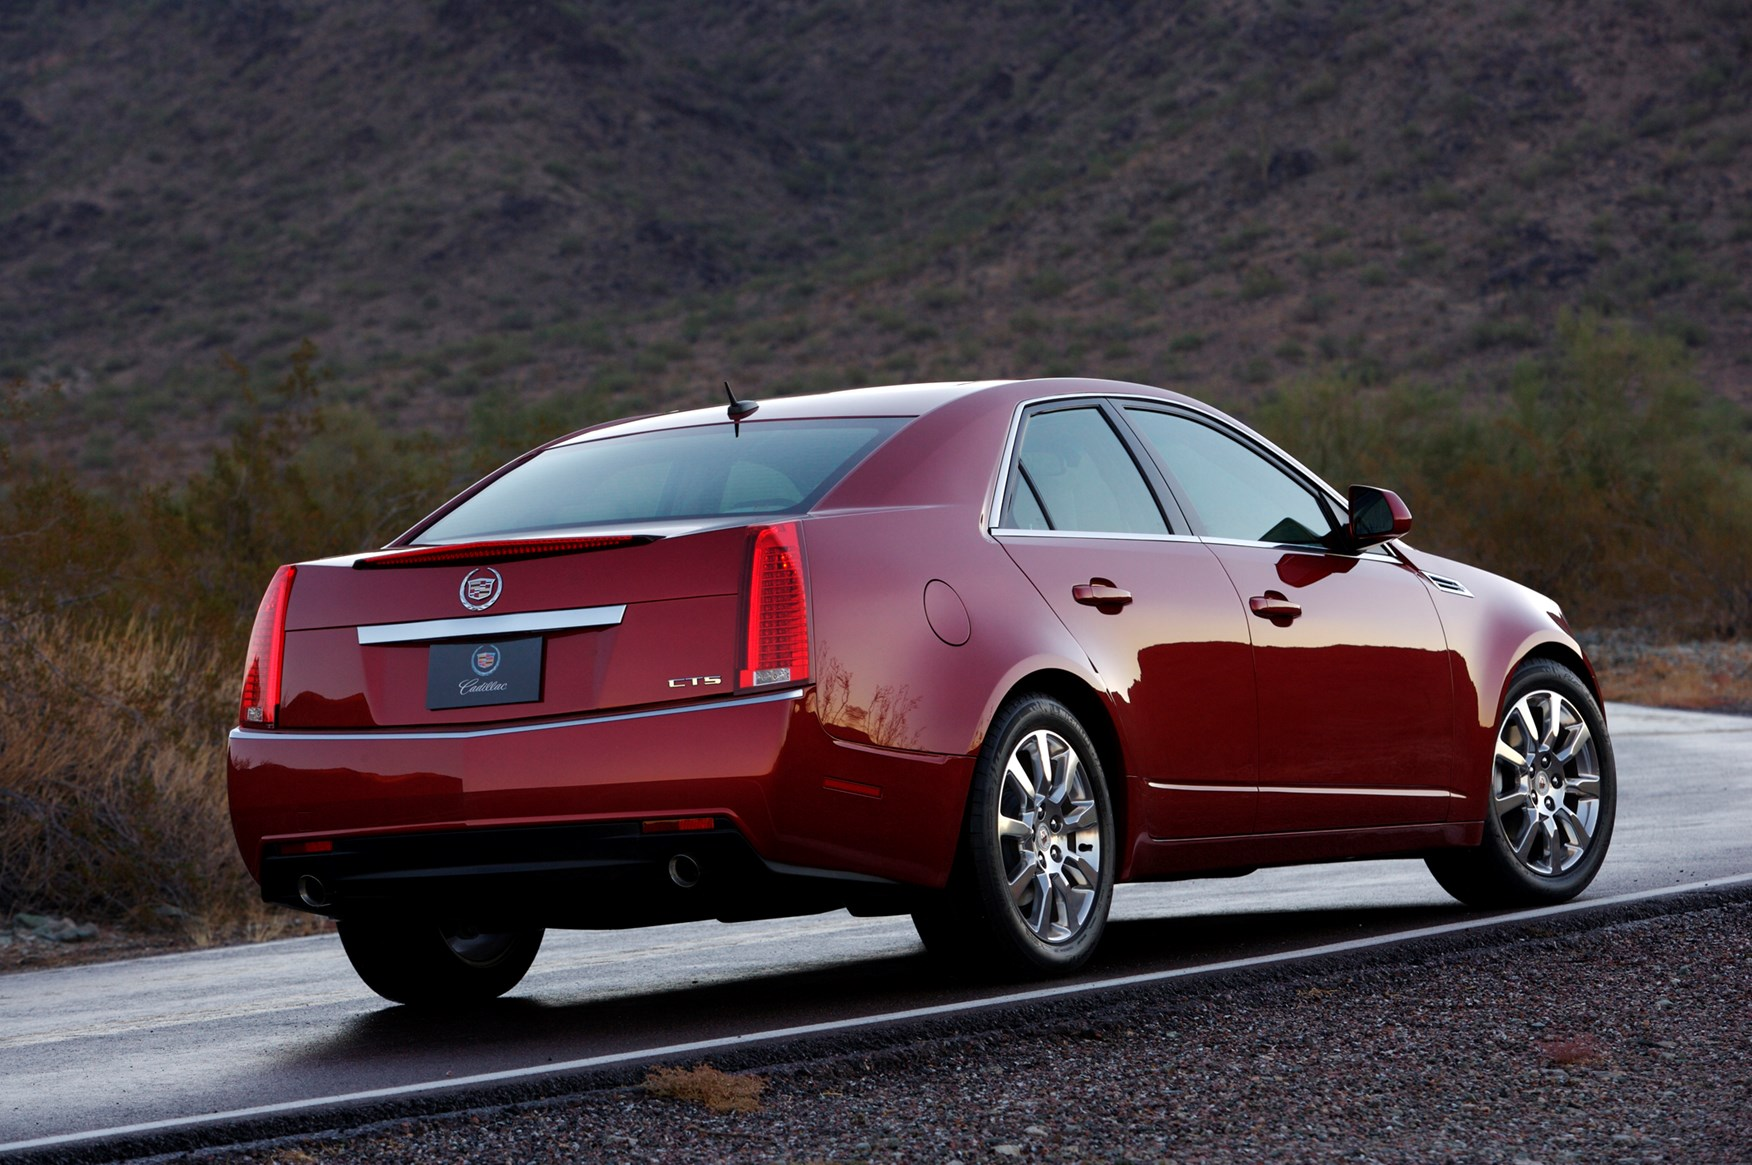 cadillac cts saloon review 2008 2010 parkers. Black Bedroom Furniture Sets. Home Design Ideas